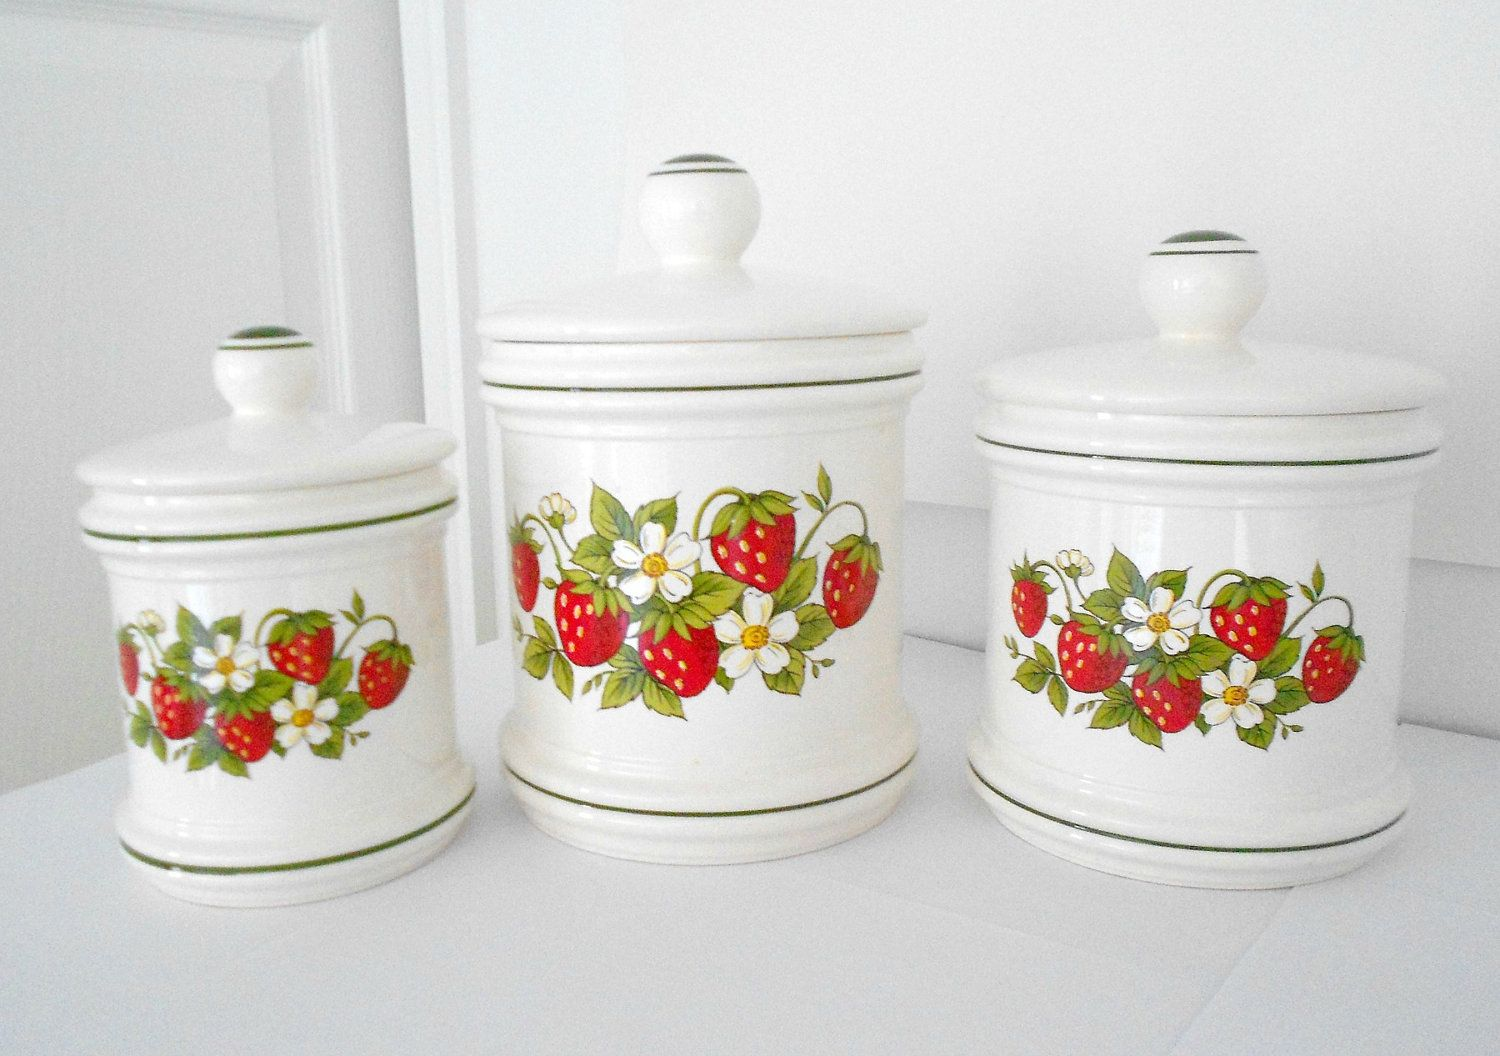 Canisters Strawberry Kitchen Decor Set of Three | Kitchen decor ...